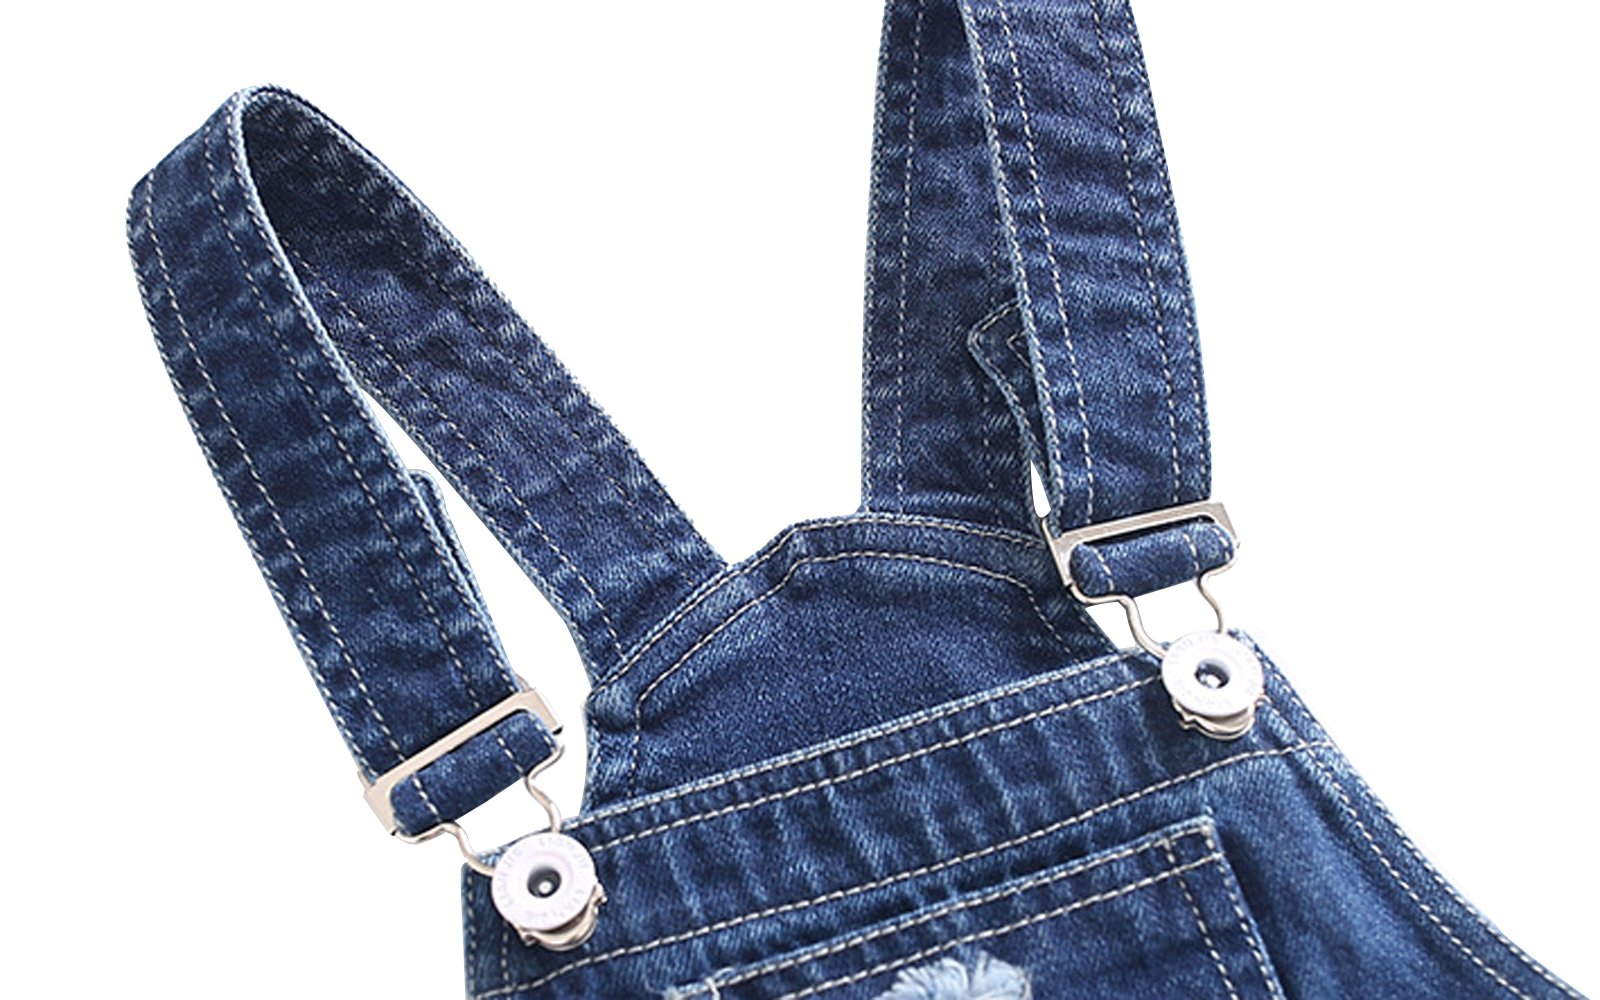 Ding Dong Baby Toddler Boy Girl Denim Overalls(Style 1,5T) by Ding Dong (Image #4)